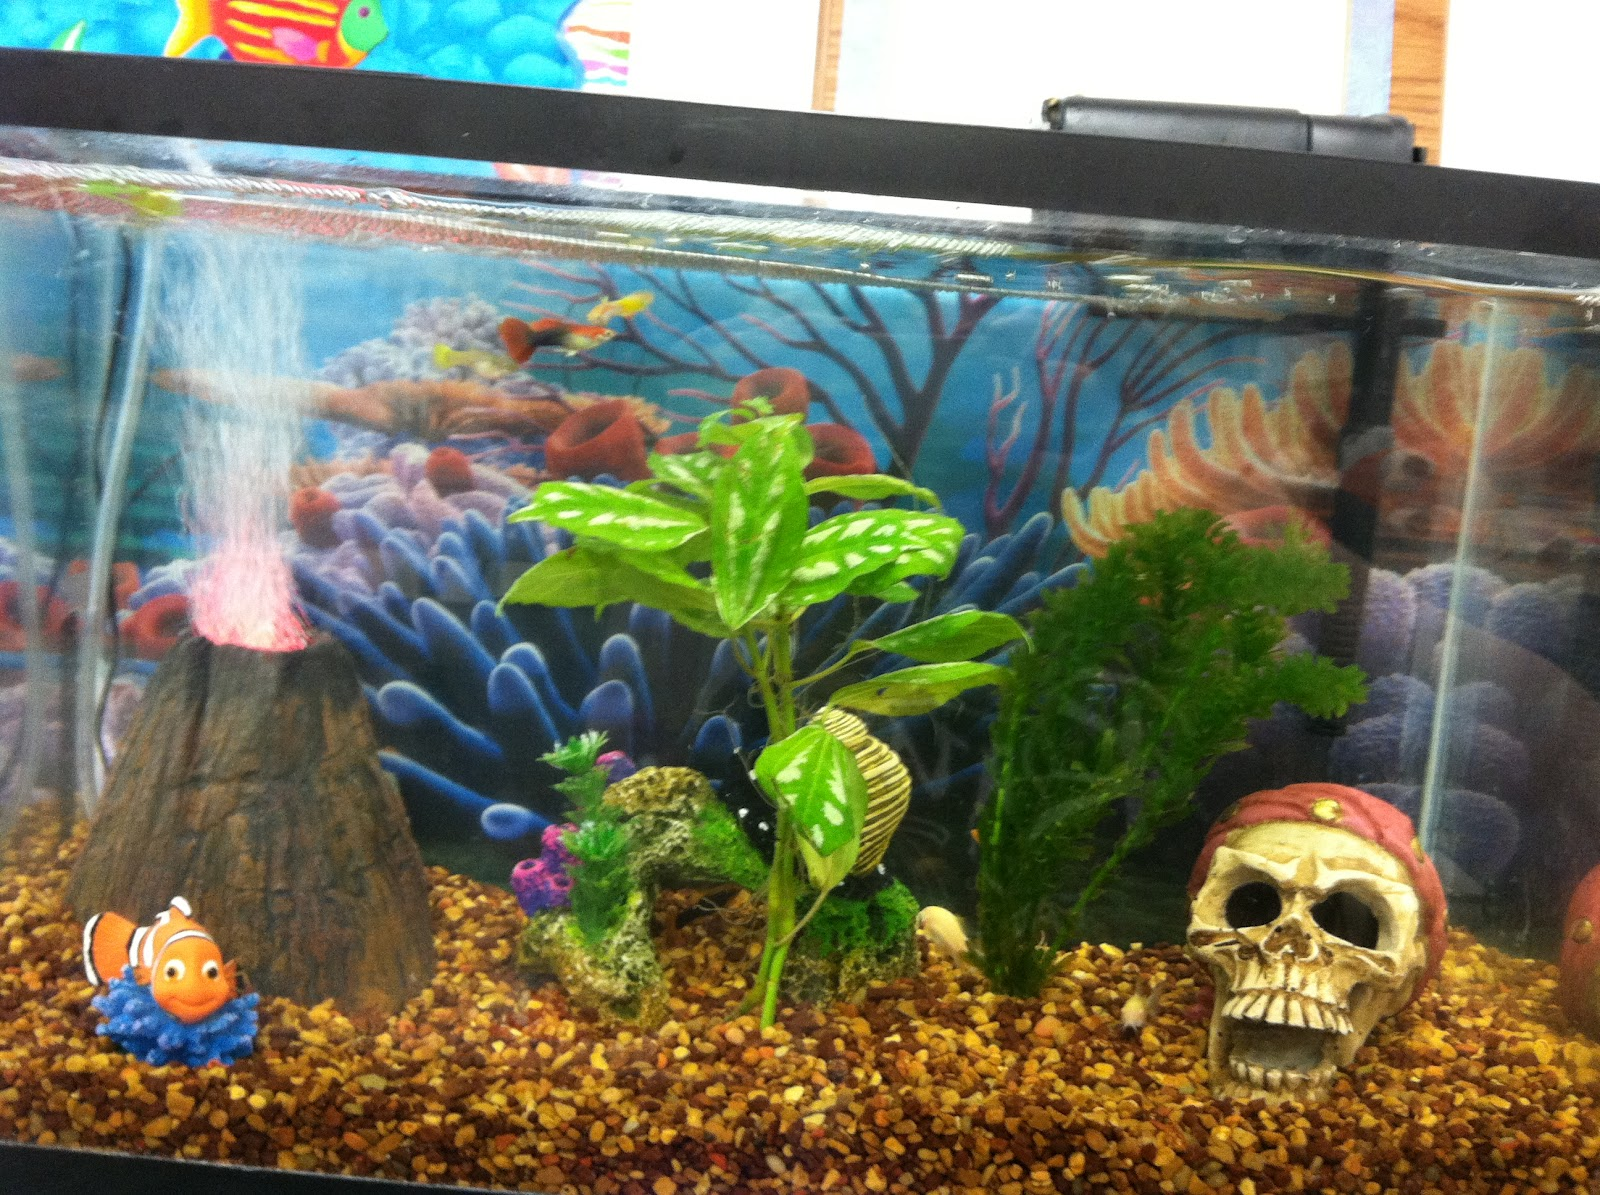 Finding nemo fish tank volcano images for Finding nemo fish tank